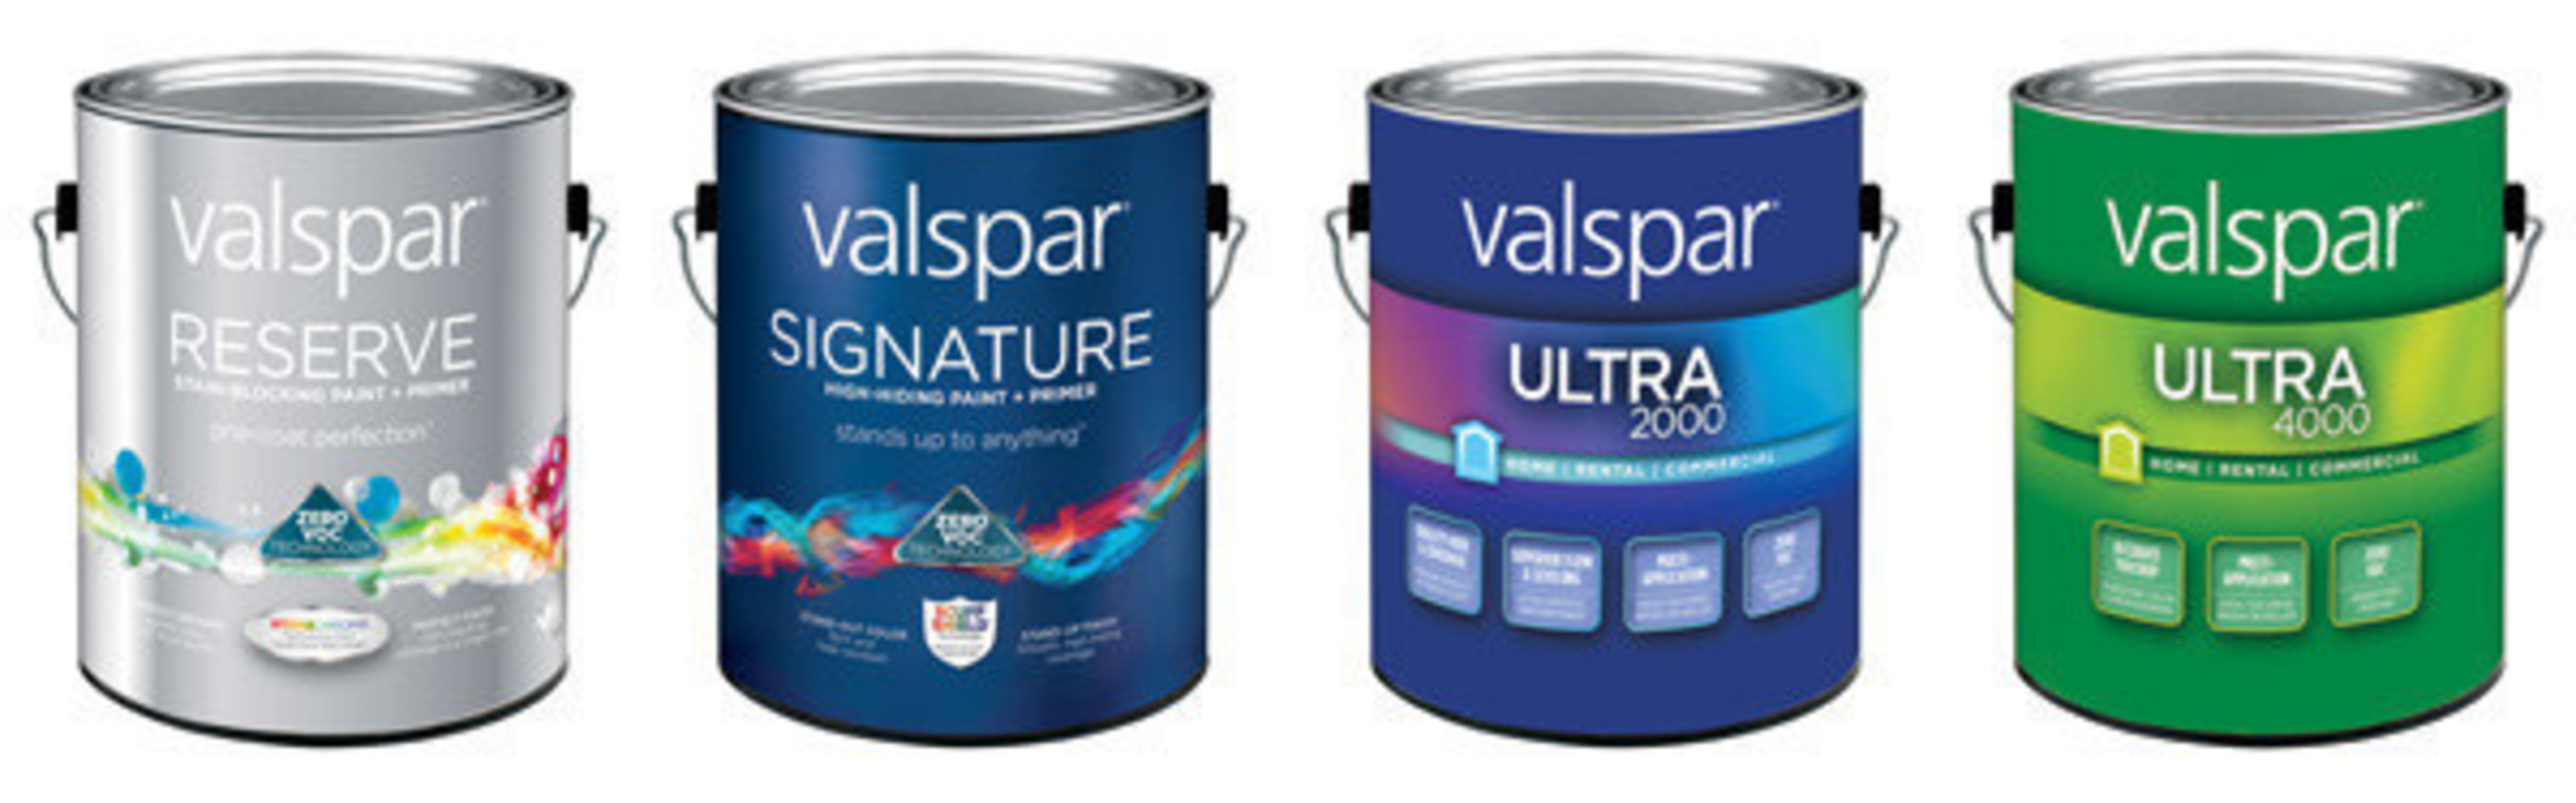 breathe easier with valspar s invigorated paint line at lowe s on valspar paint id=65774